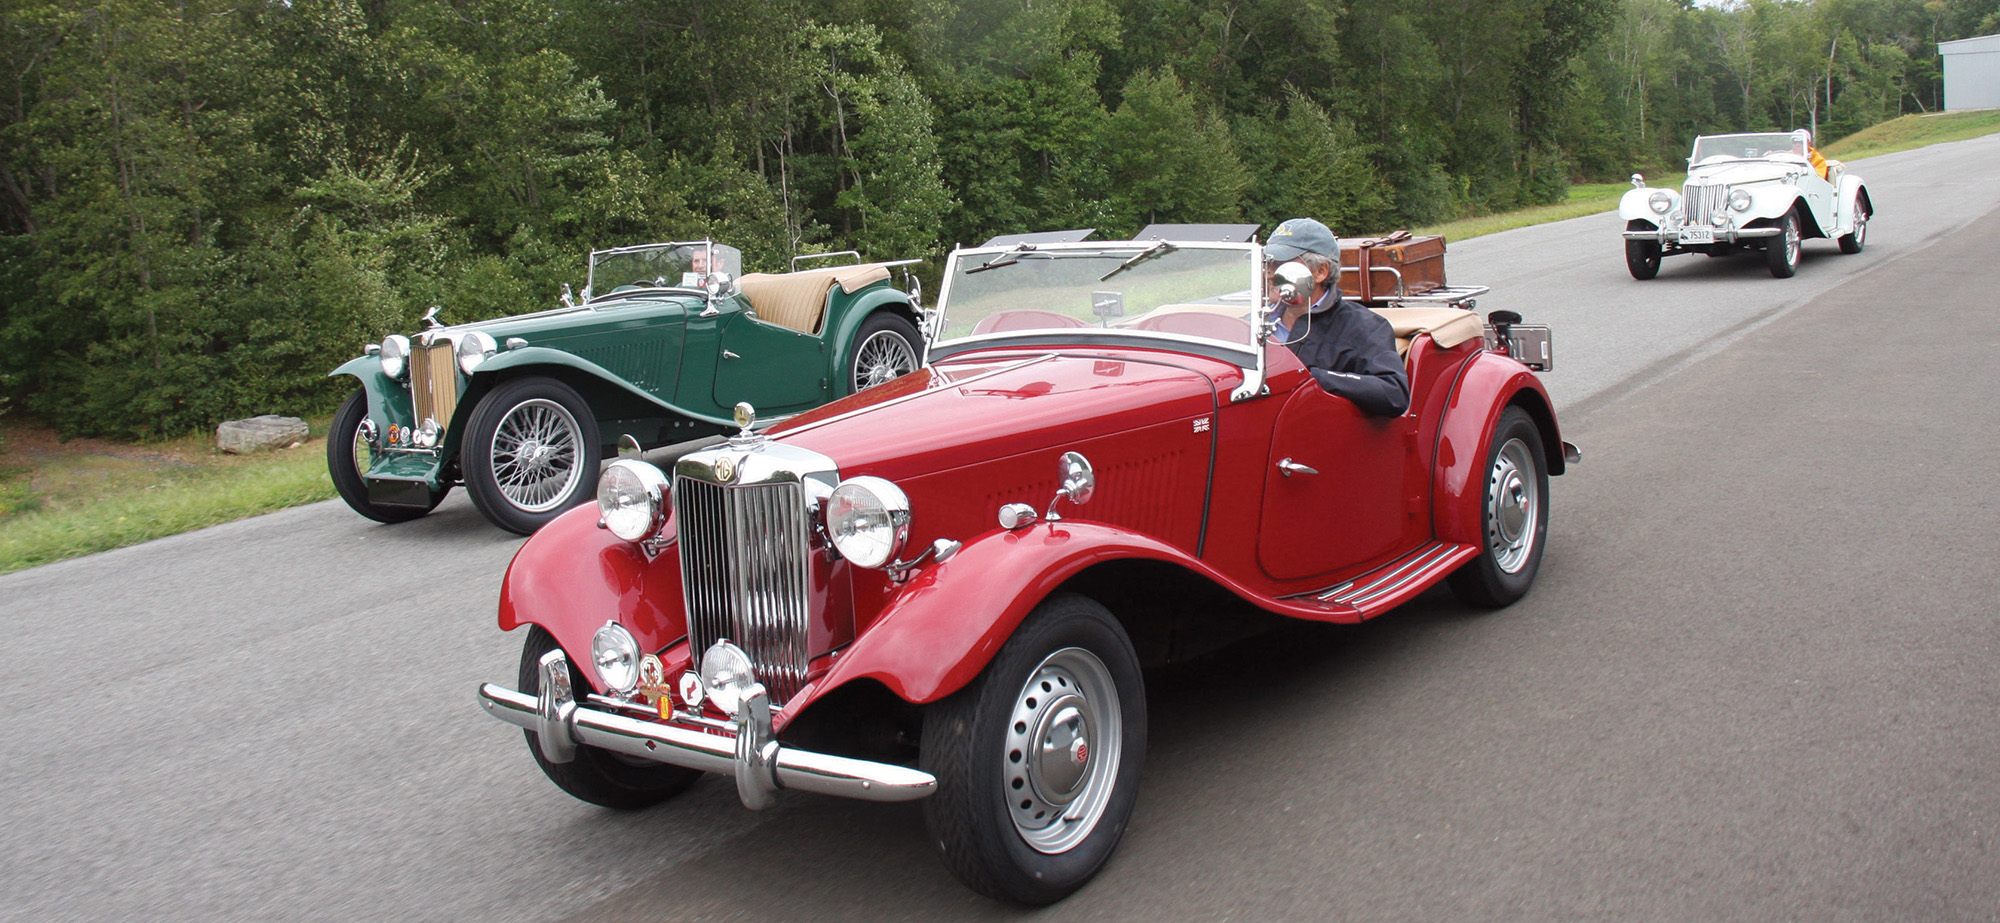 T-Time: Comparing The MG T-Series Lineup | Articles